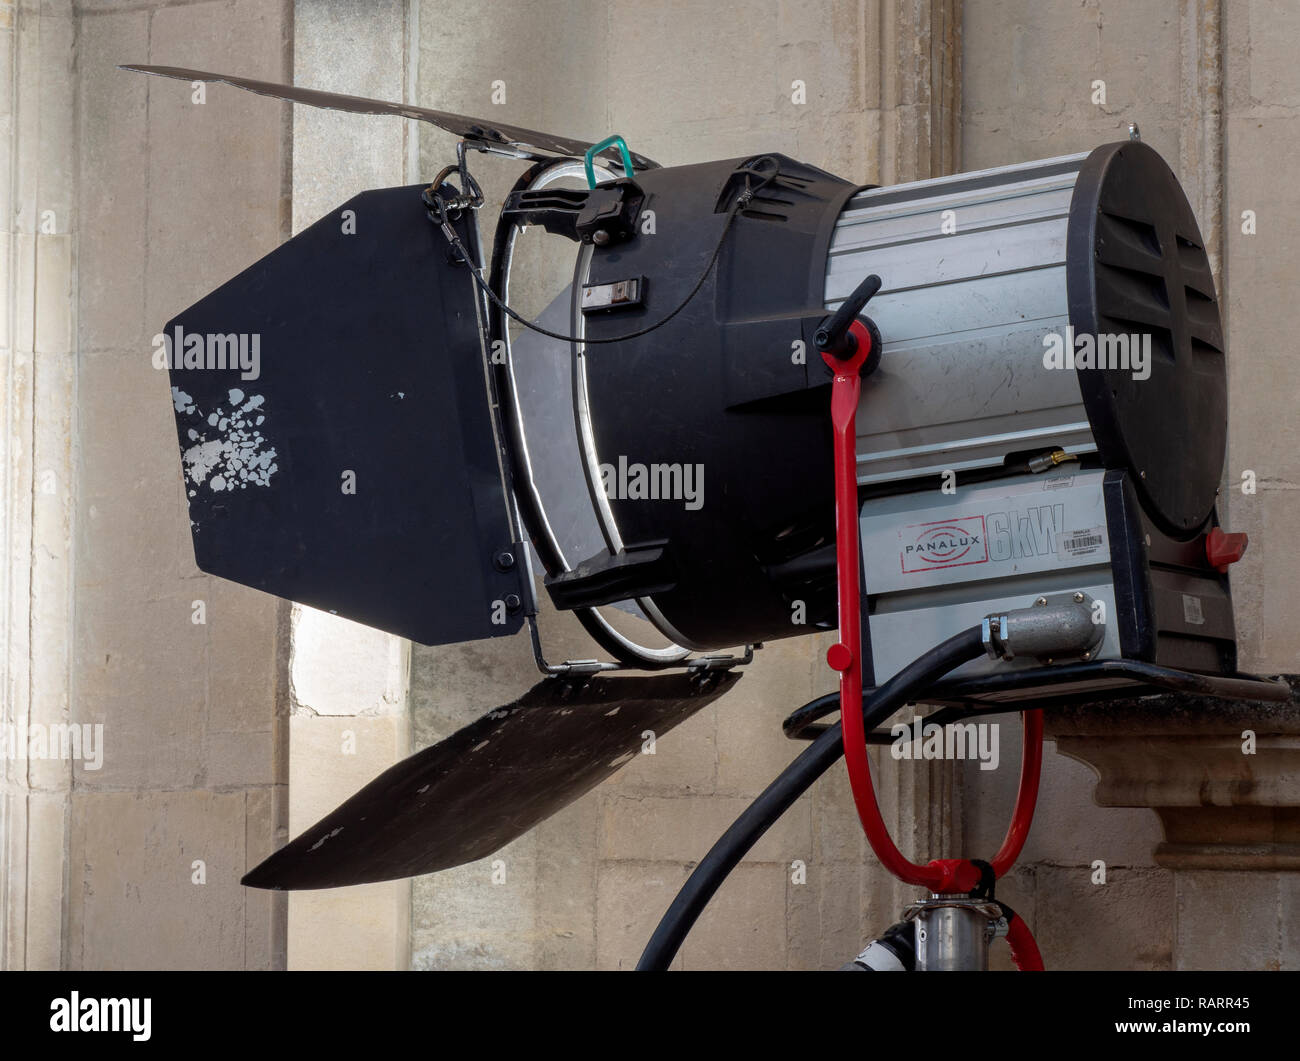 Large 6kW lamp for use on film sets supplied by Panalux. - Stock Image